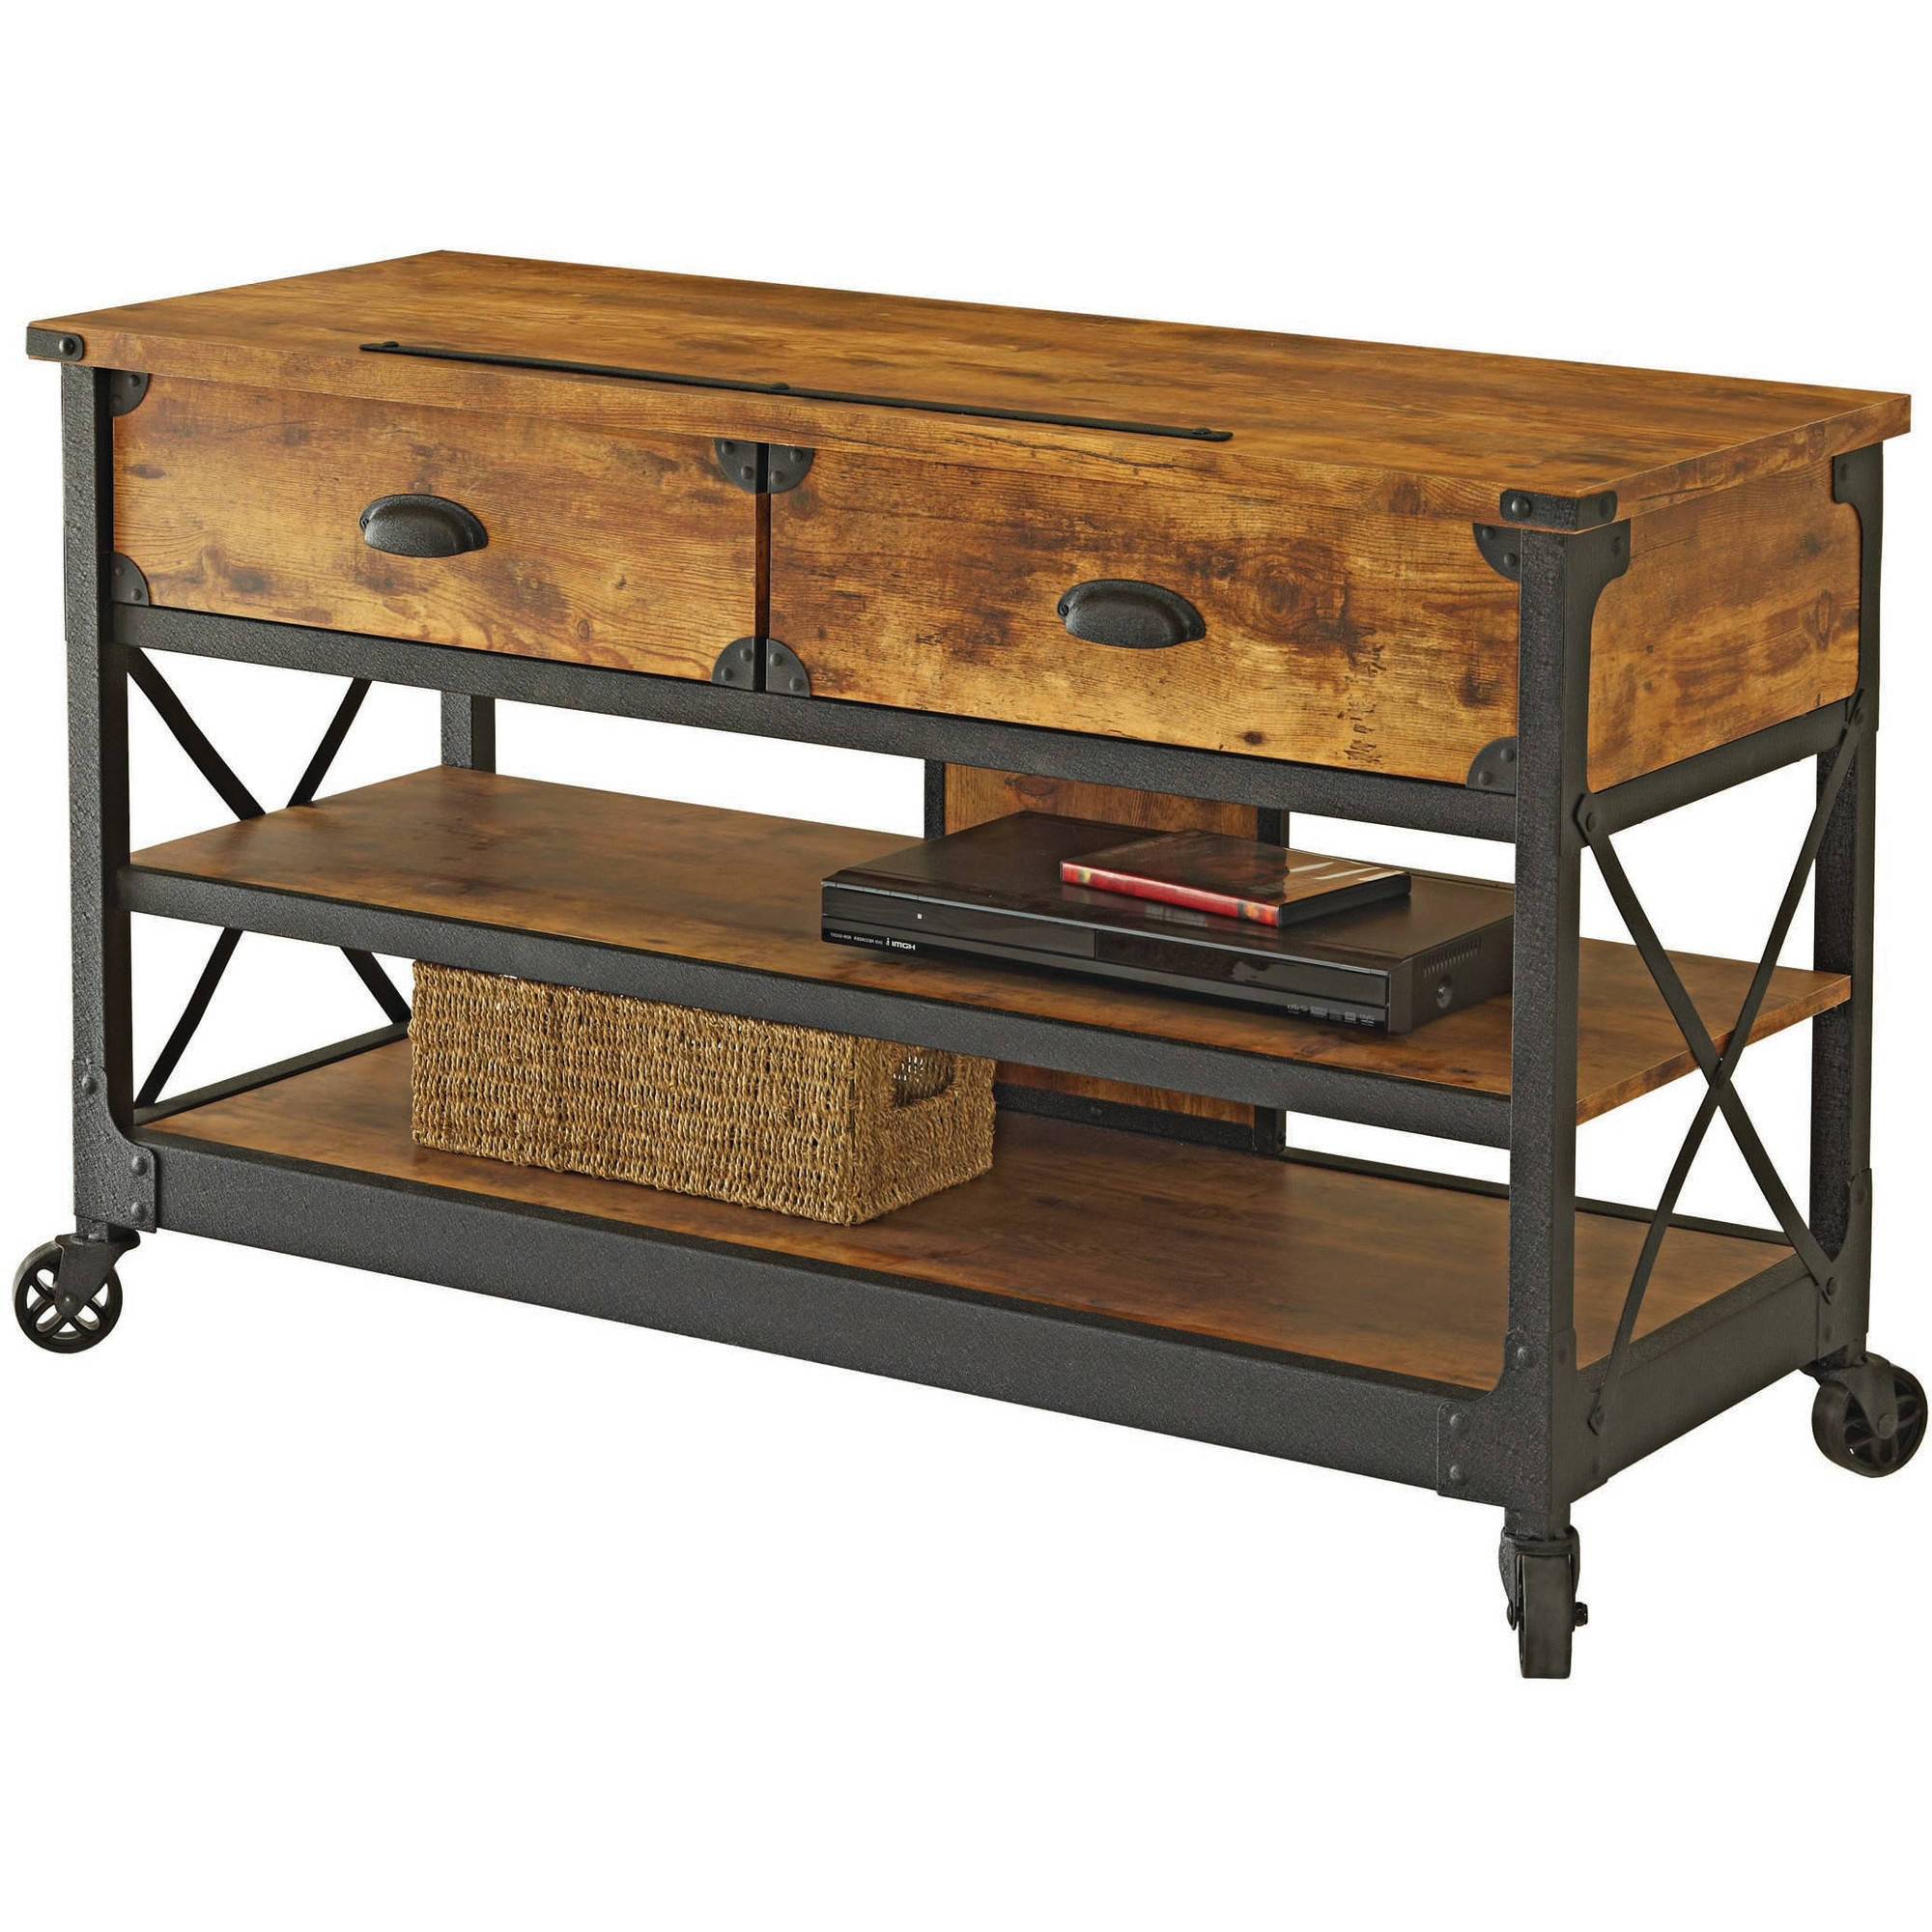 Better Homes & Gardens Rustic Country Tv Stand For Tvs Up To 52 Inside Latest Rustic Looking Tv Stands (View 3 of 20)